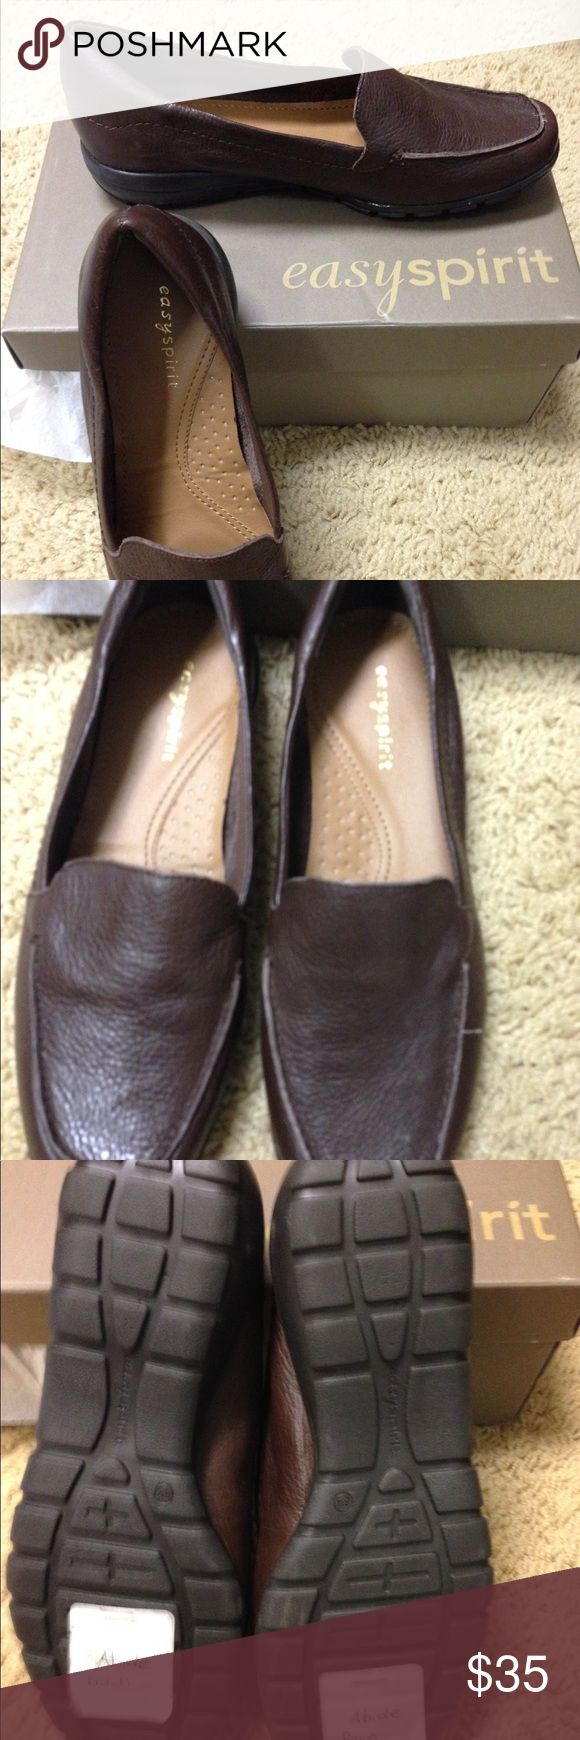 Easy Spirit Shoes Brand new Easy Spirit Abide. Easy Spirit Shoes Flats & Loafers